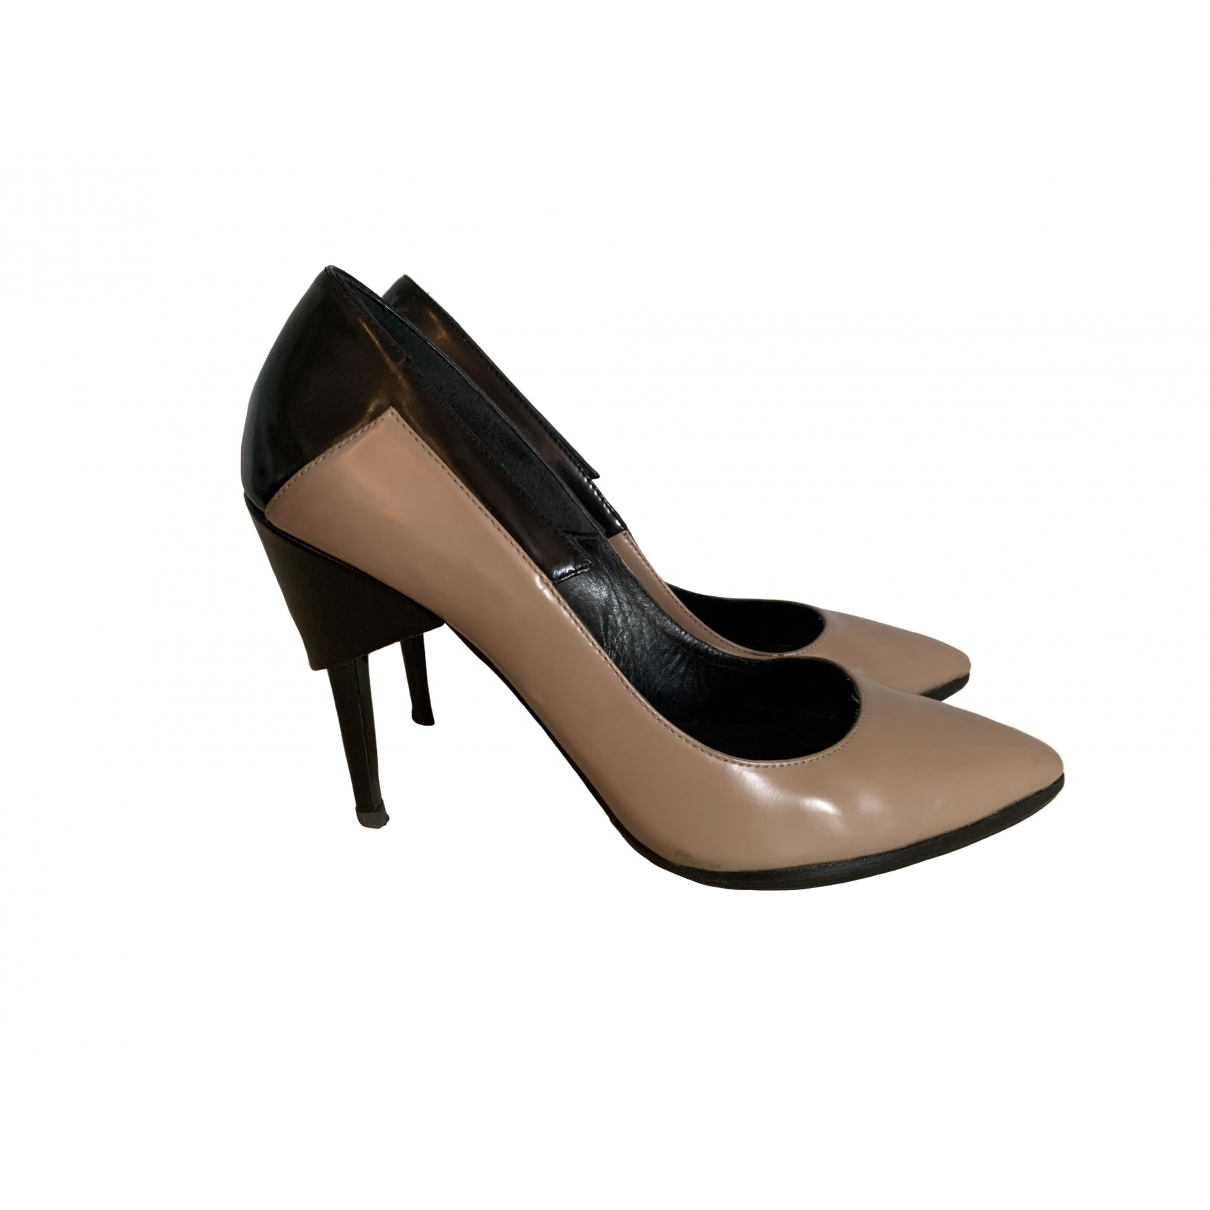 Uterque \N Beige Leather Heels for Women 37 EU